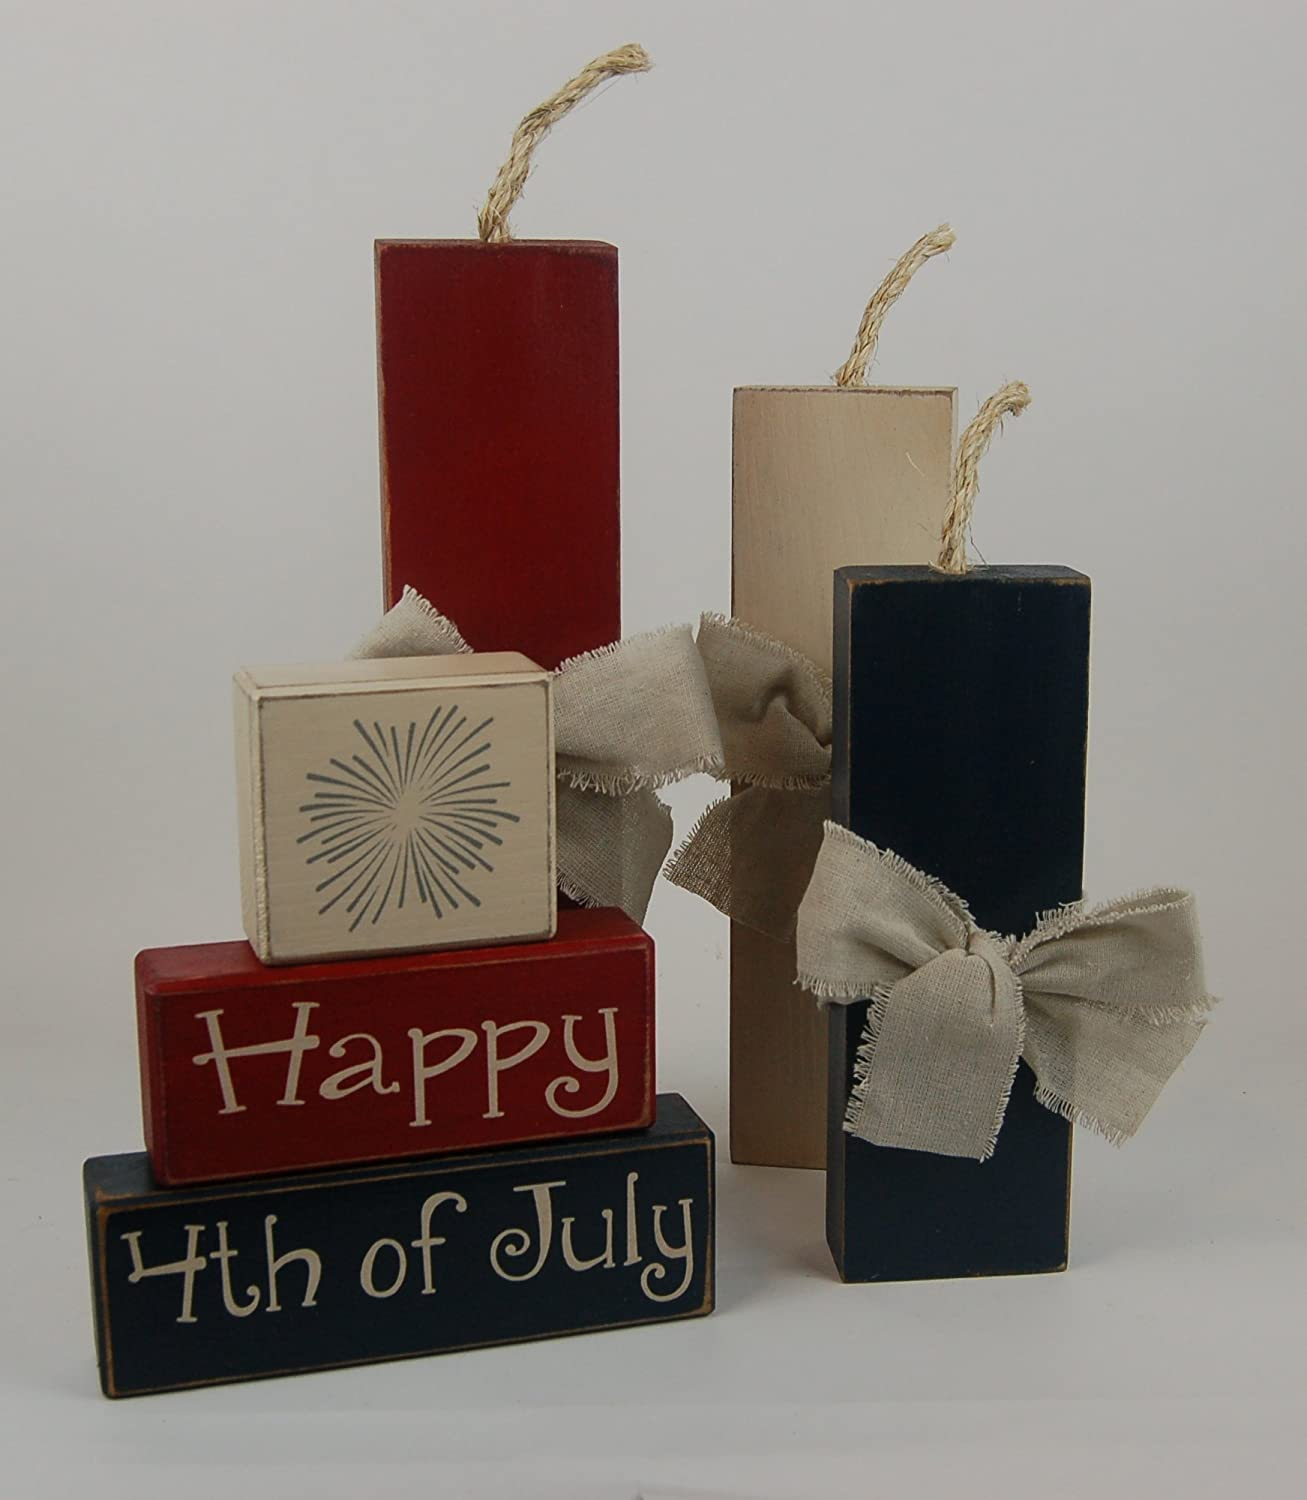 Amazon Com Fireworks Happy 4th Of July Firecrackers Americana Decor Primitive Country Distressed Wood Stacking Sign Blocks Seasonal Holiday America Fourth Of July 4th Of July Americana Home Decor Handmade